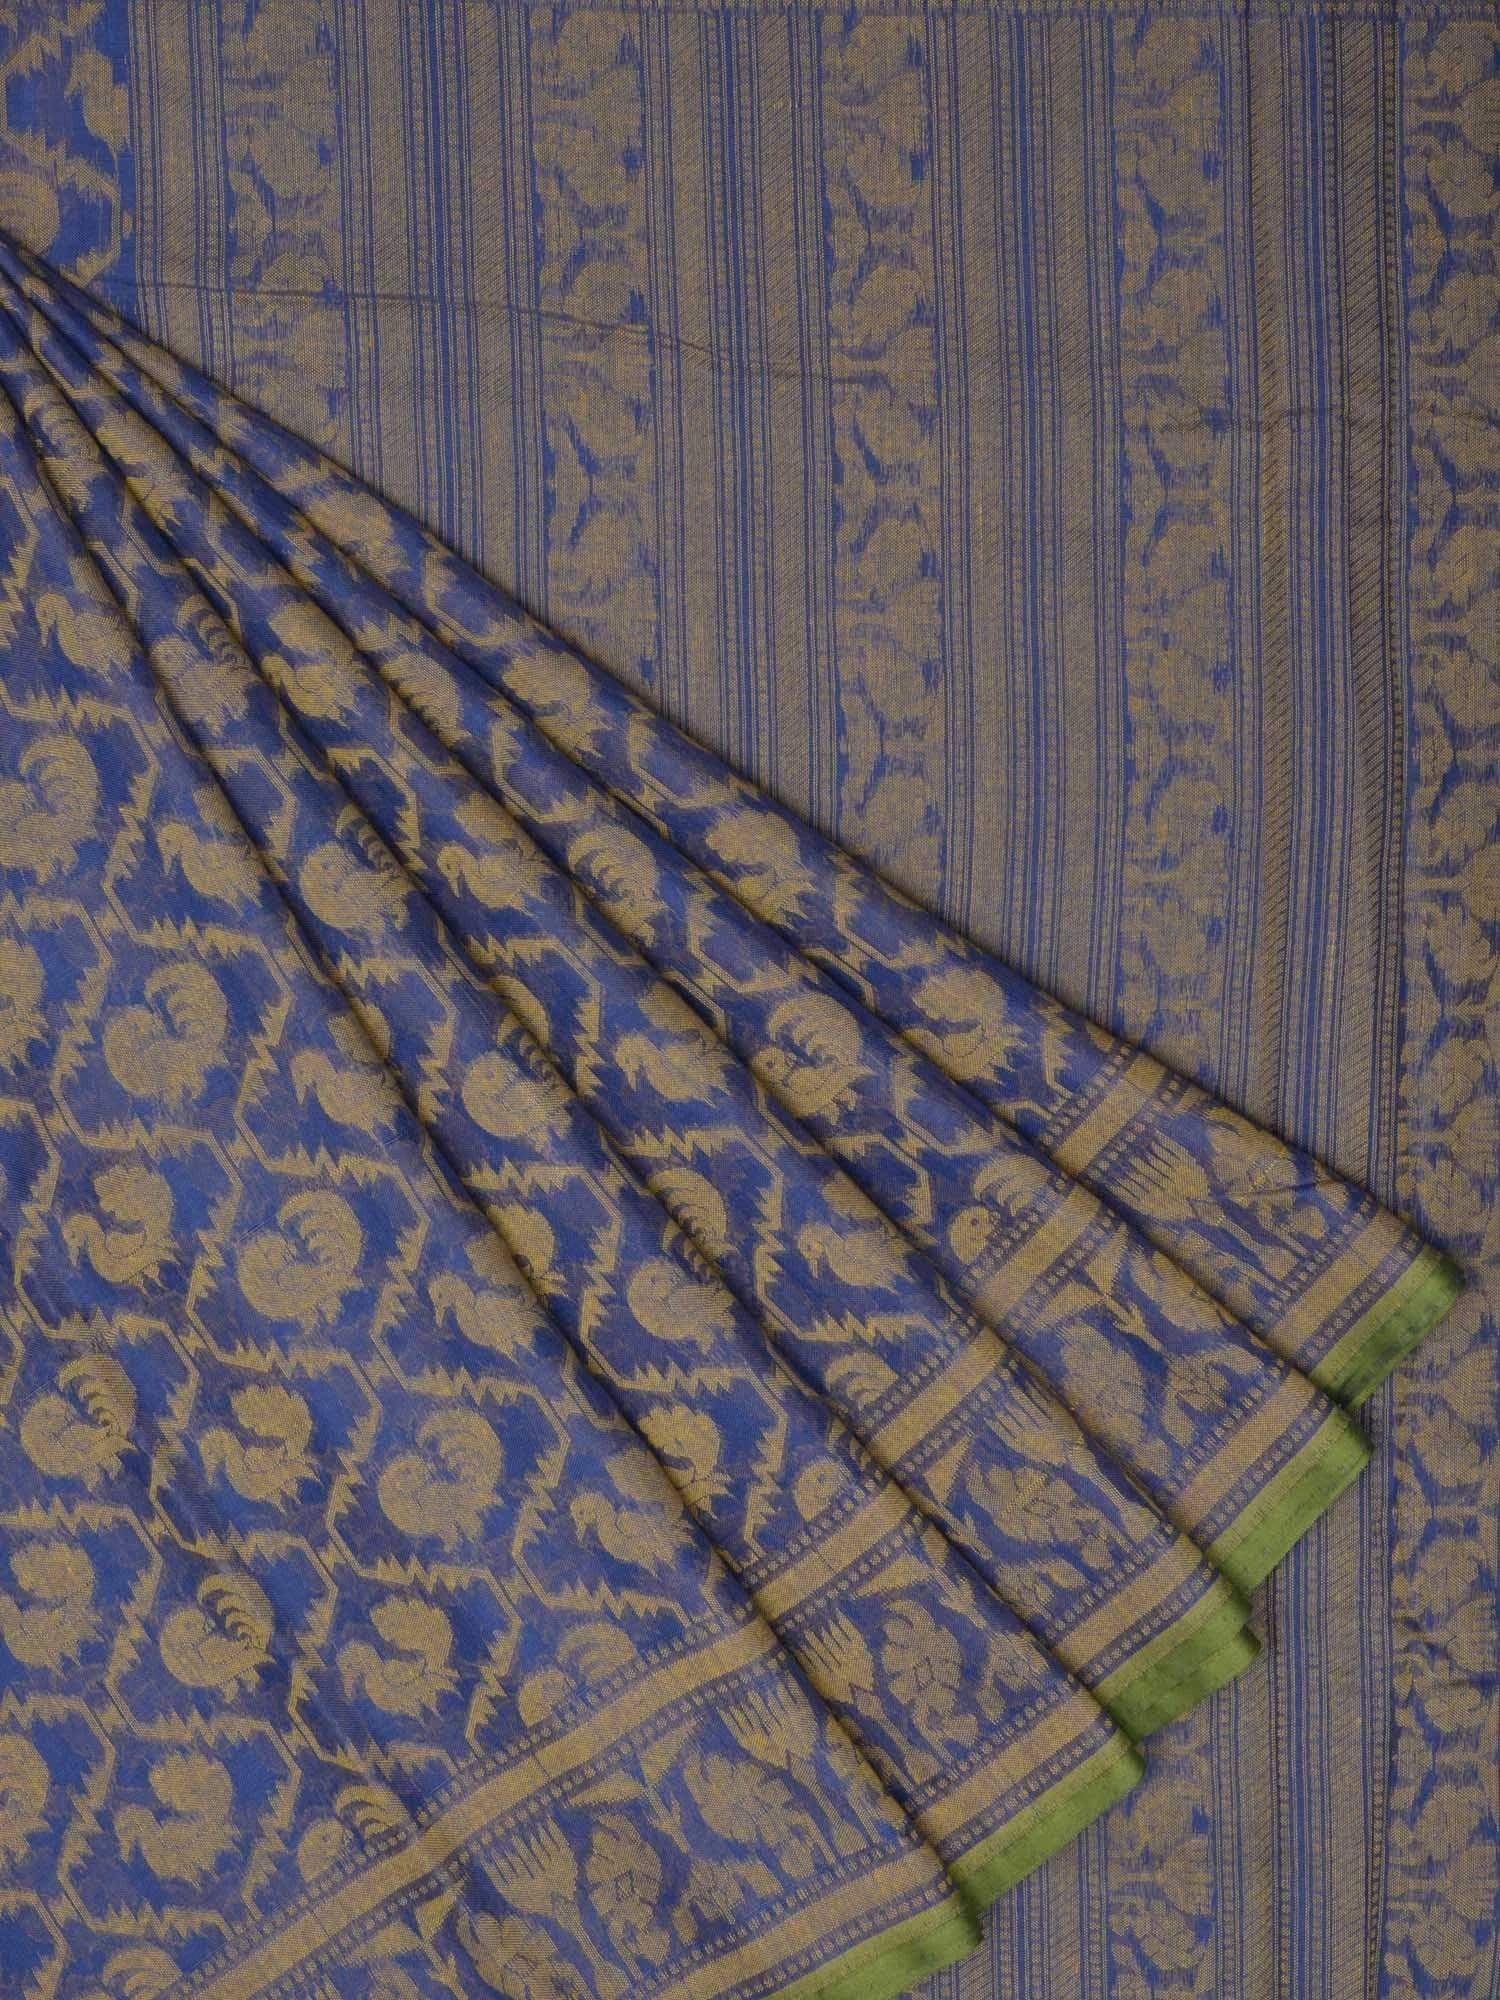 Blue Banaras Cotton Handloom Saree with Cut Work Design b0261